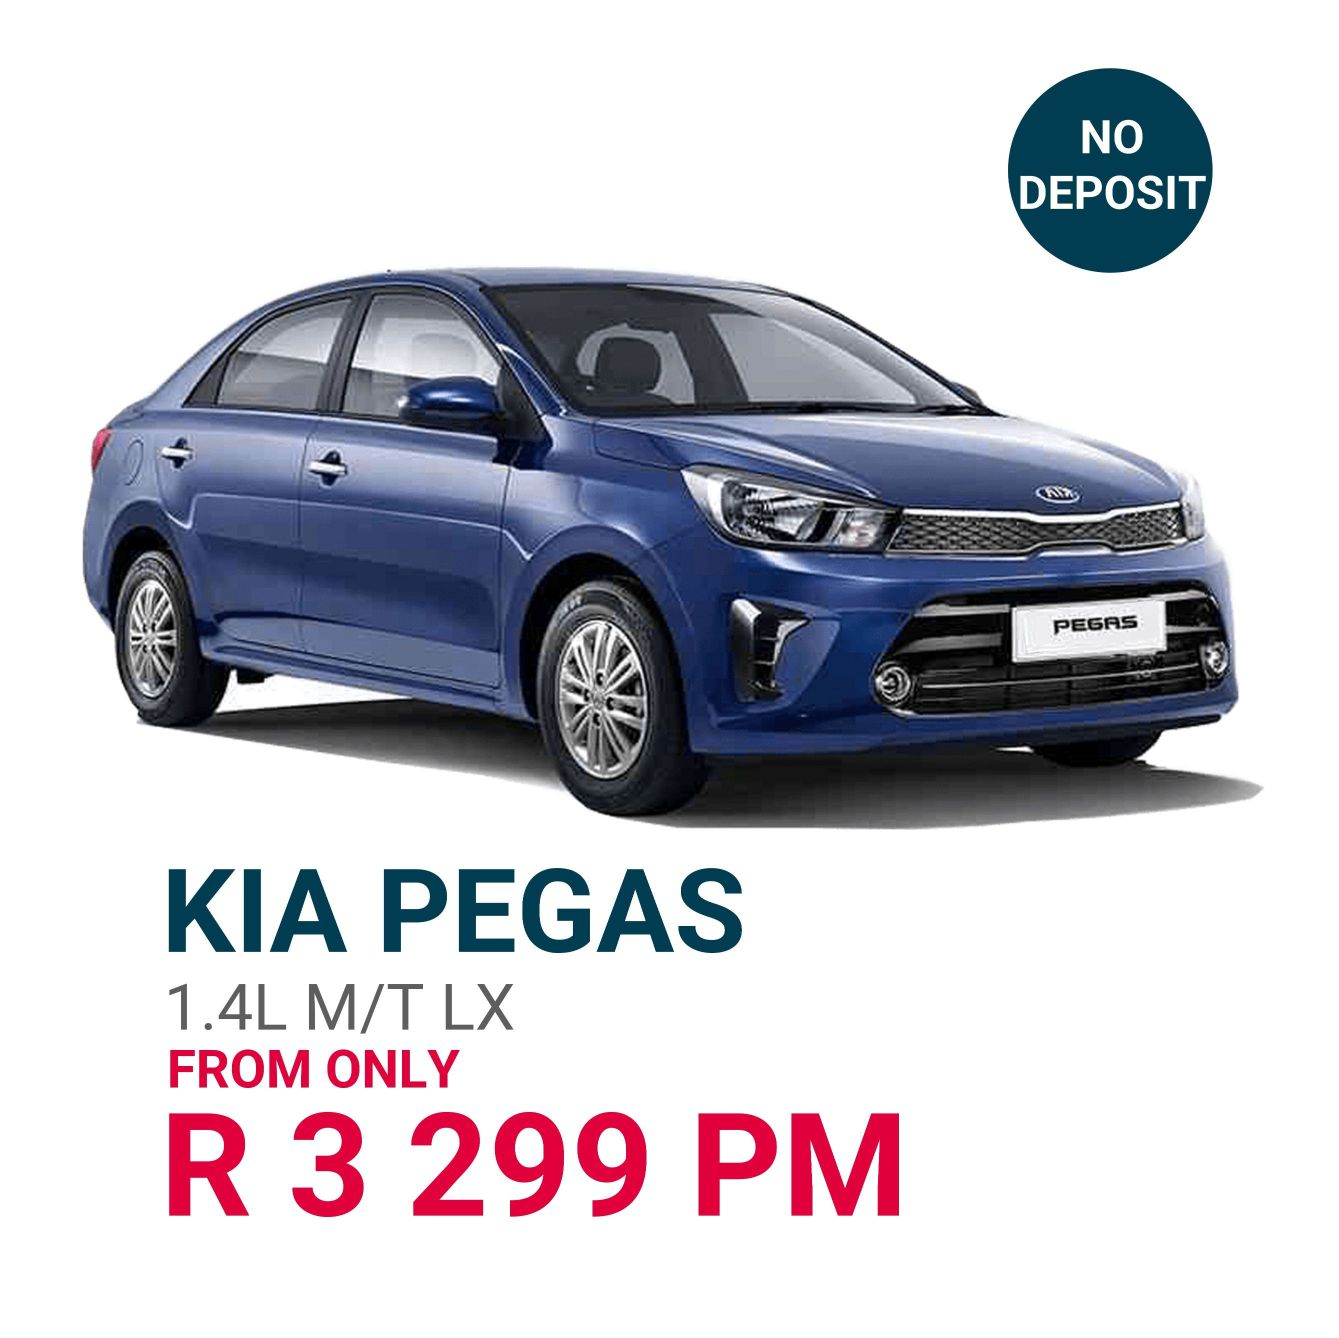 kia-pegas-1-4-m-t-from-only-r3-299pm